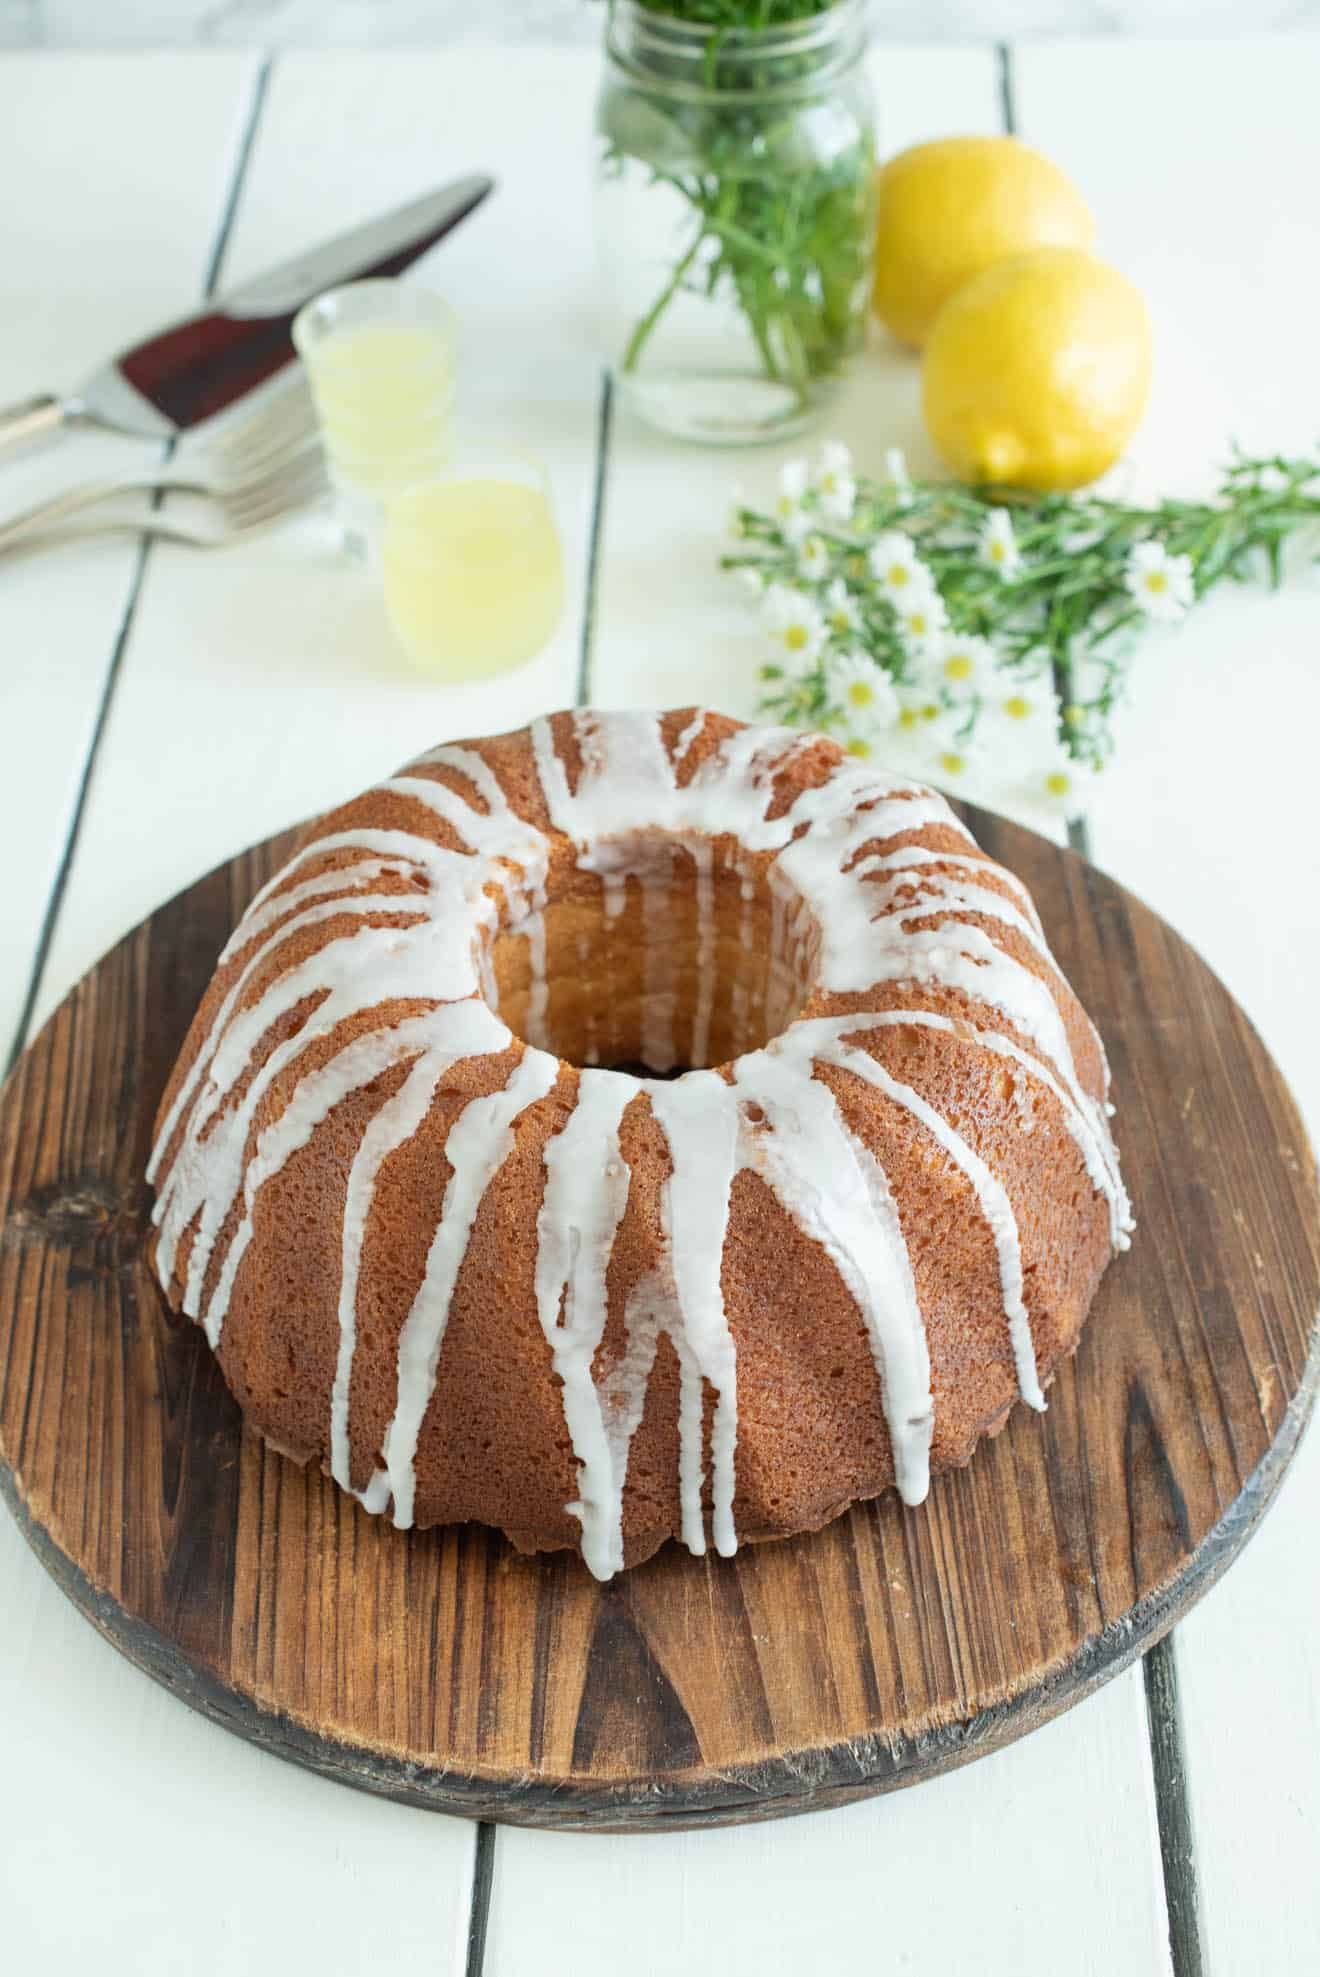 A whole bundt cake drizzled with frosting on a round, wood cake stand with lemons and daisies in the background